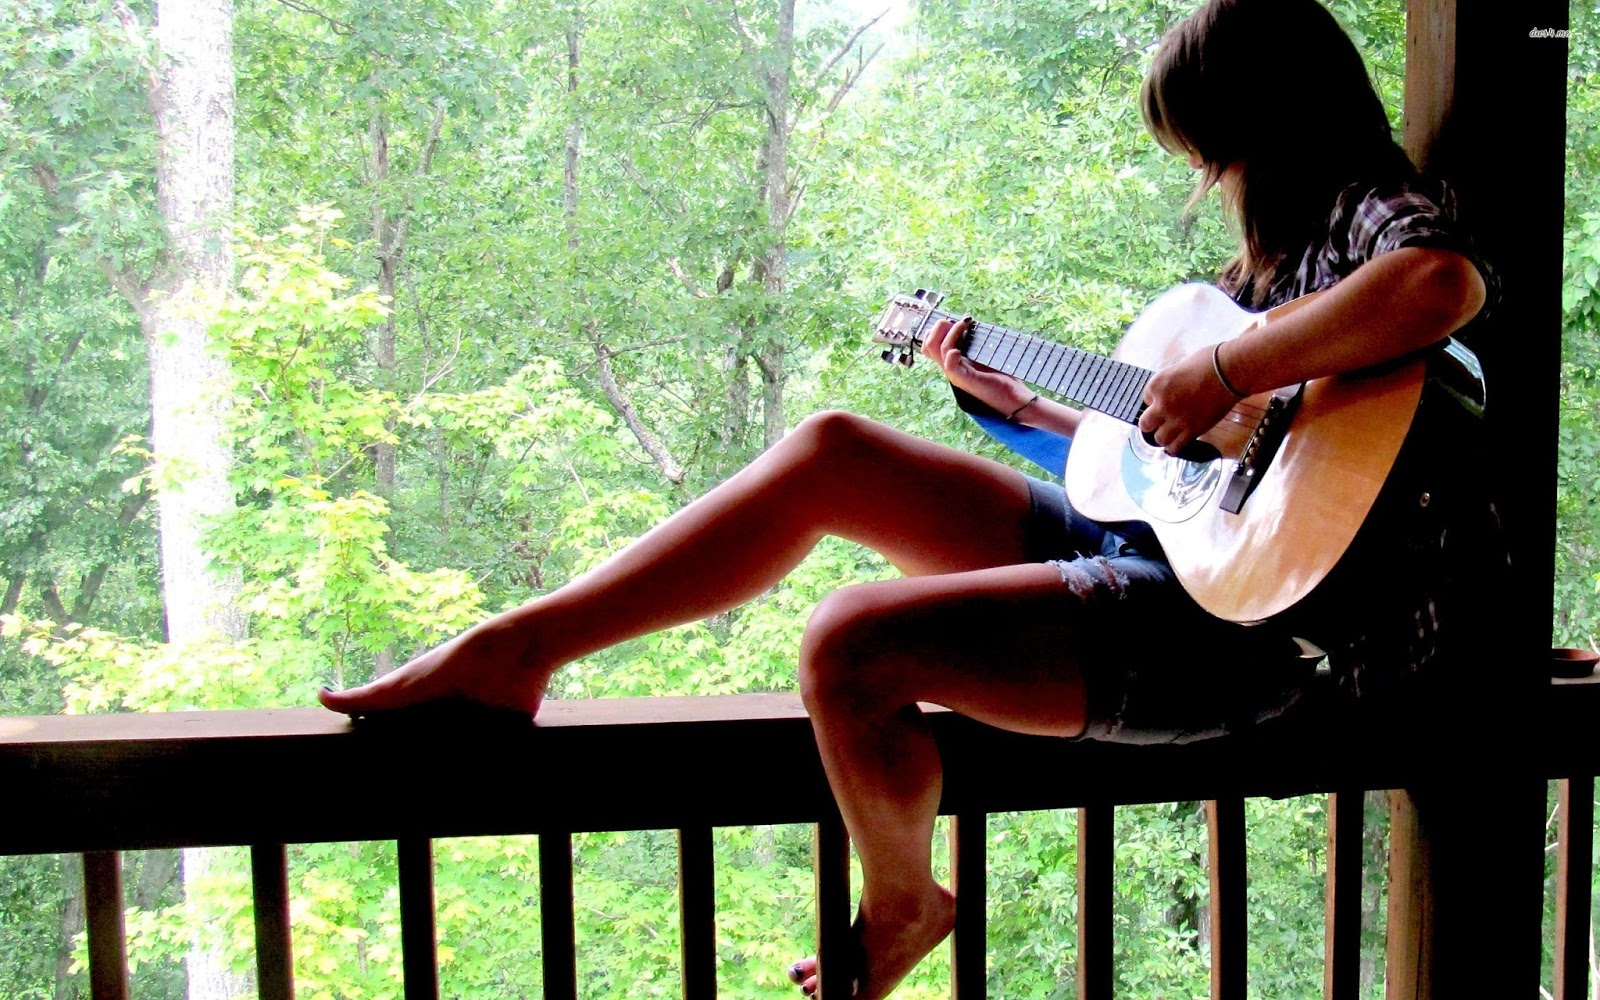 girl playing guitar hd wallpaper free hq images gallery. Black Bedroom Furniture Sets. Home Design Ideas